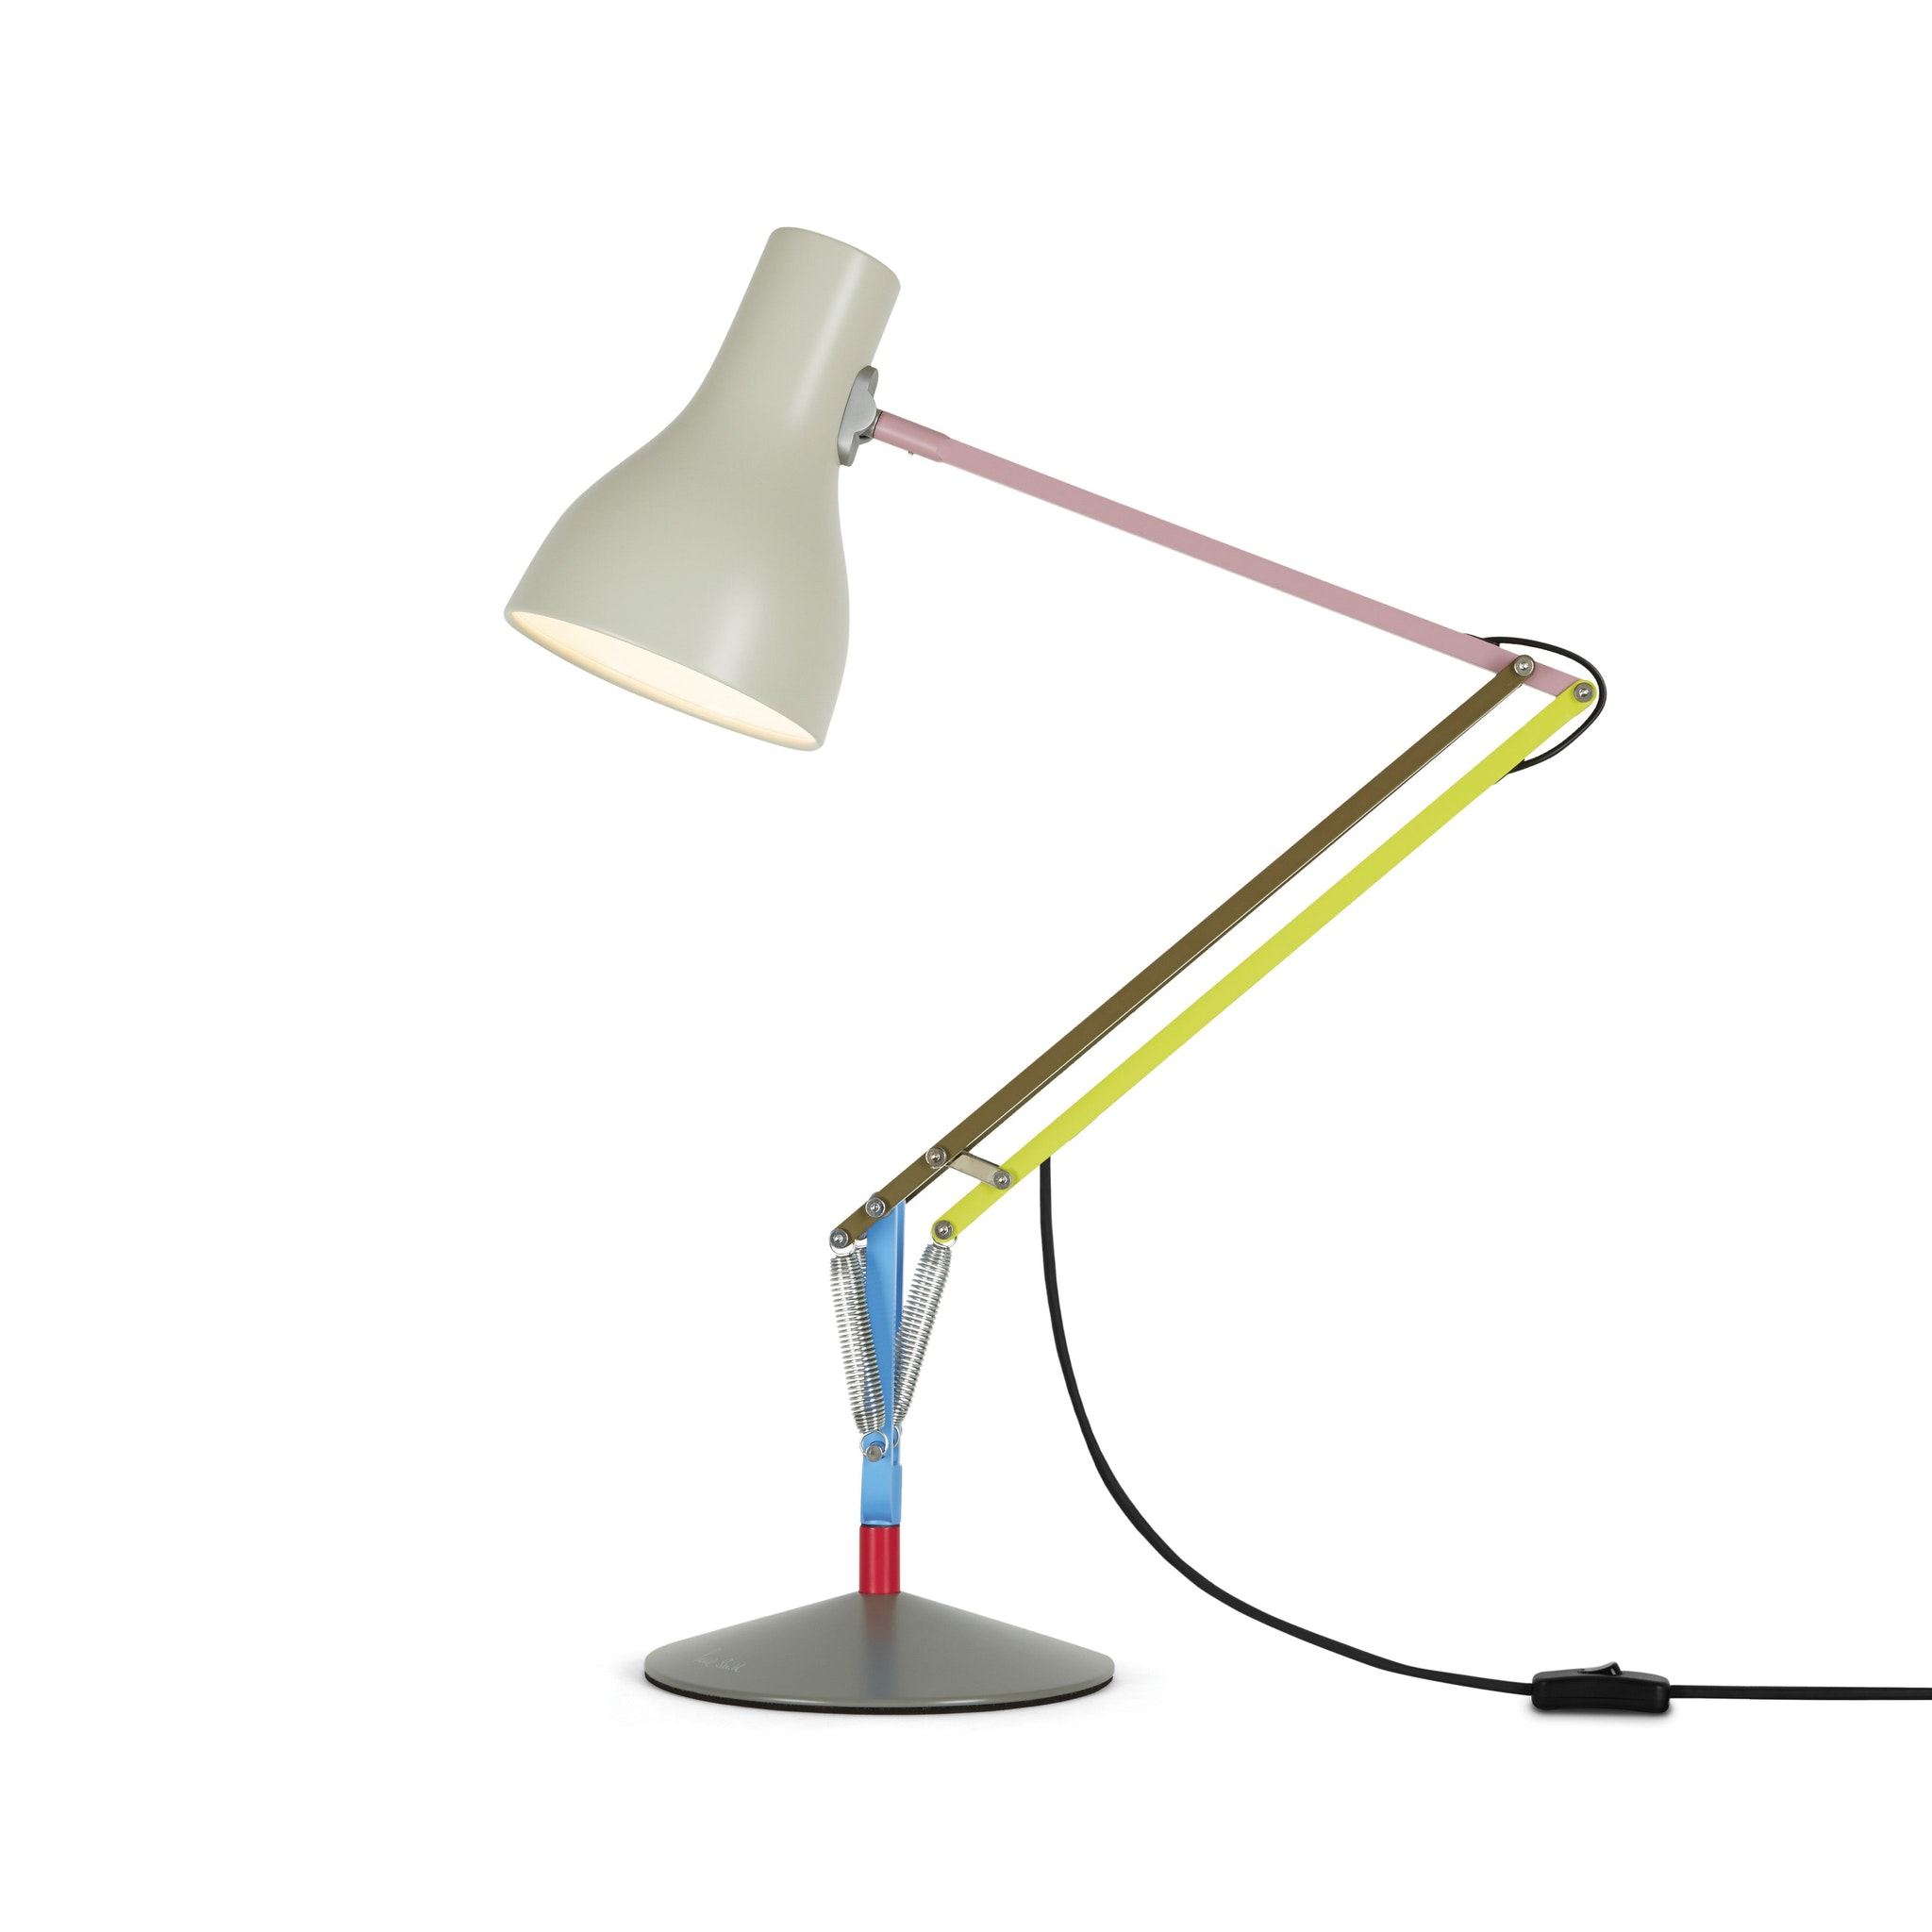 Type 75 Desk Lamp Paul Smith Edition One by Kenneth Grange